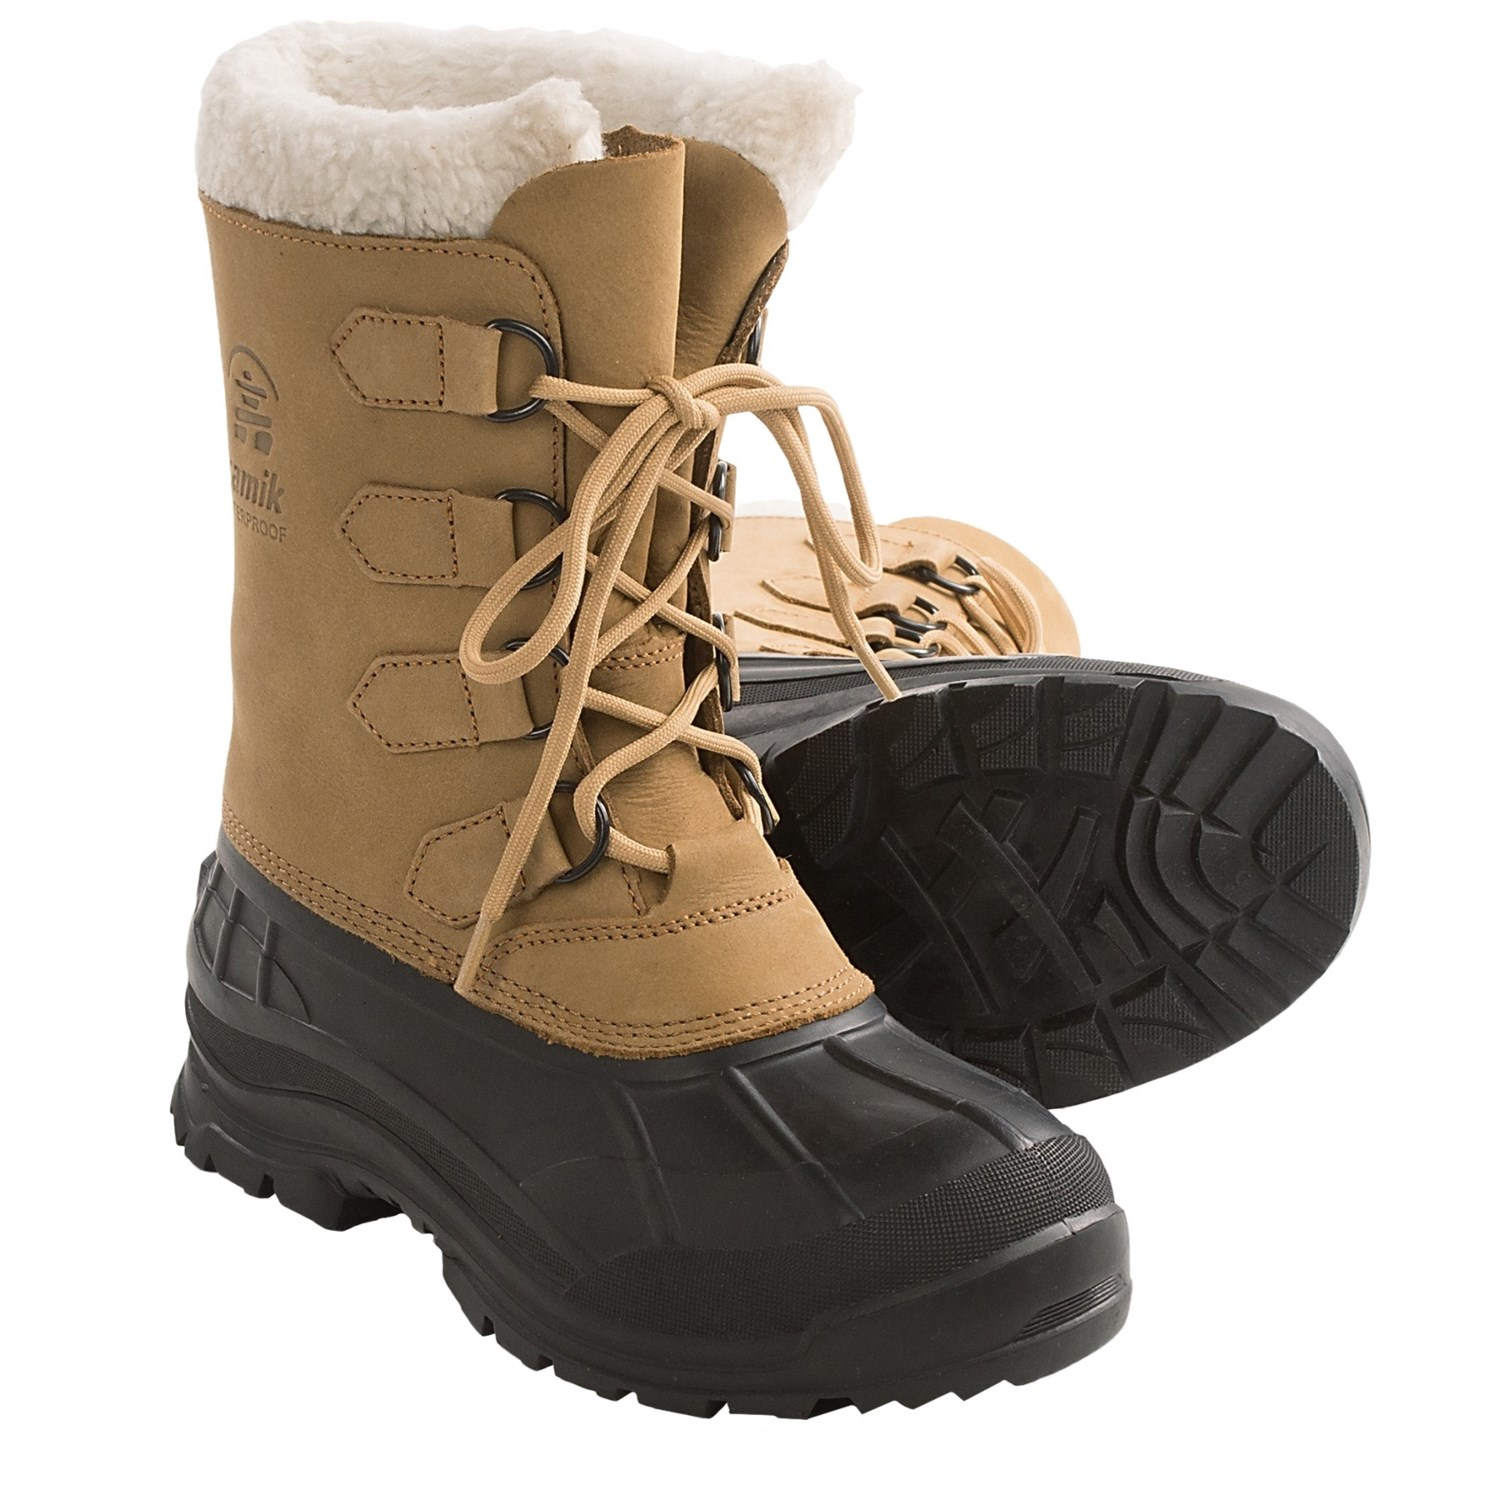 Innovative 10 Perfect Winter Boots For Women 2015